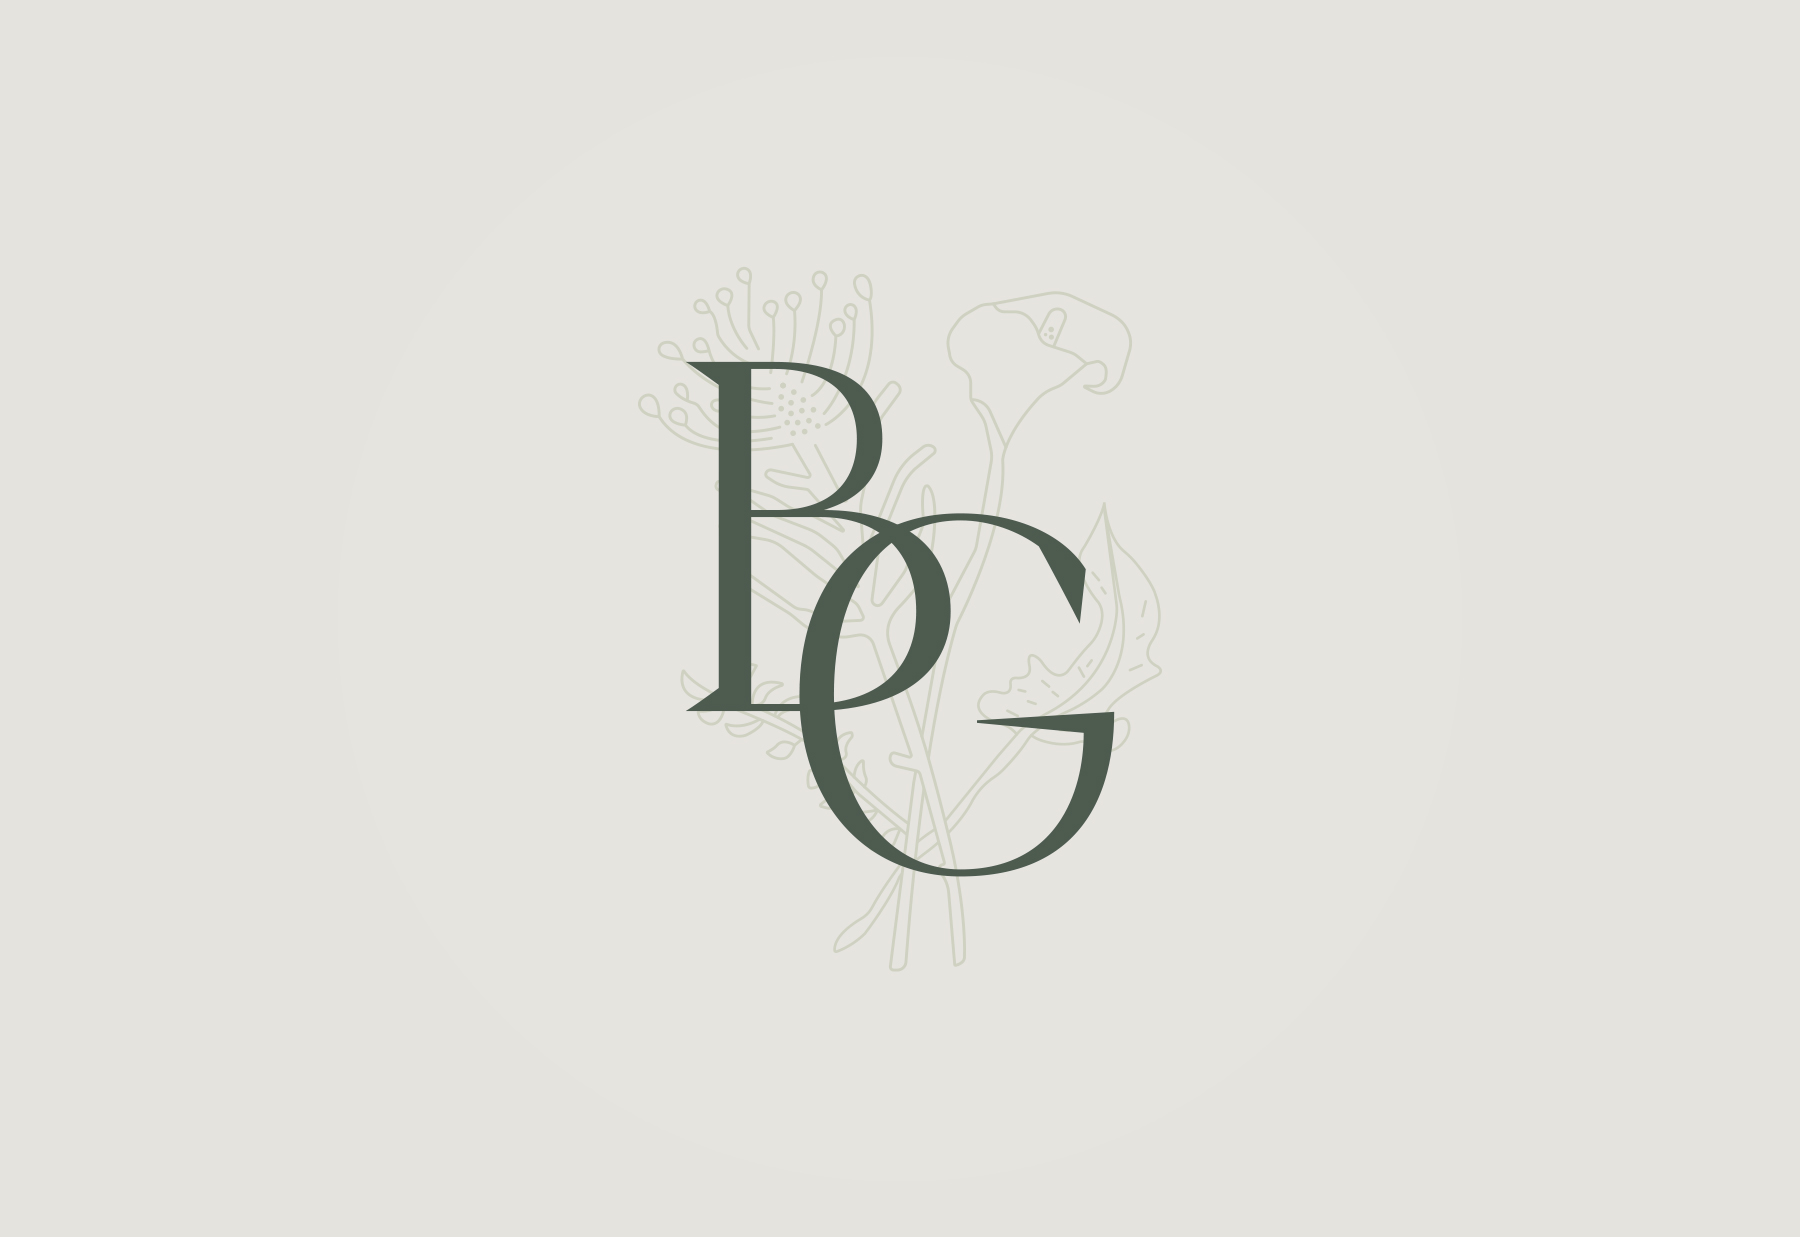 Brand mark for a boutique florist, Blooming Good